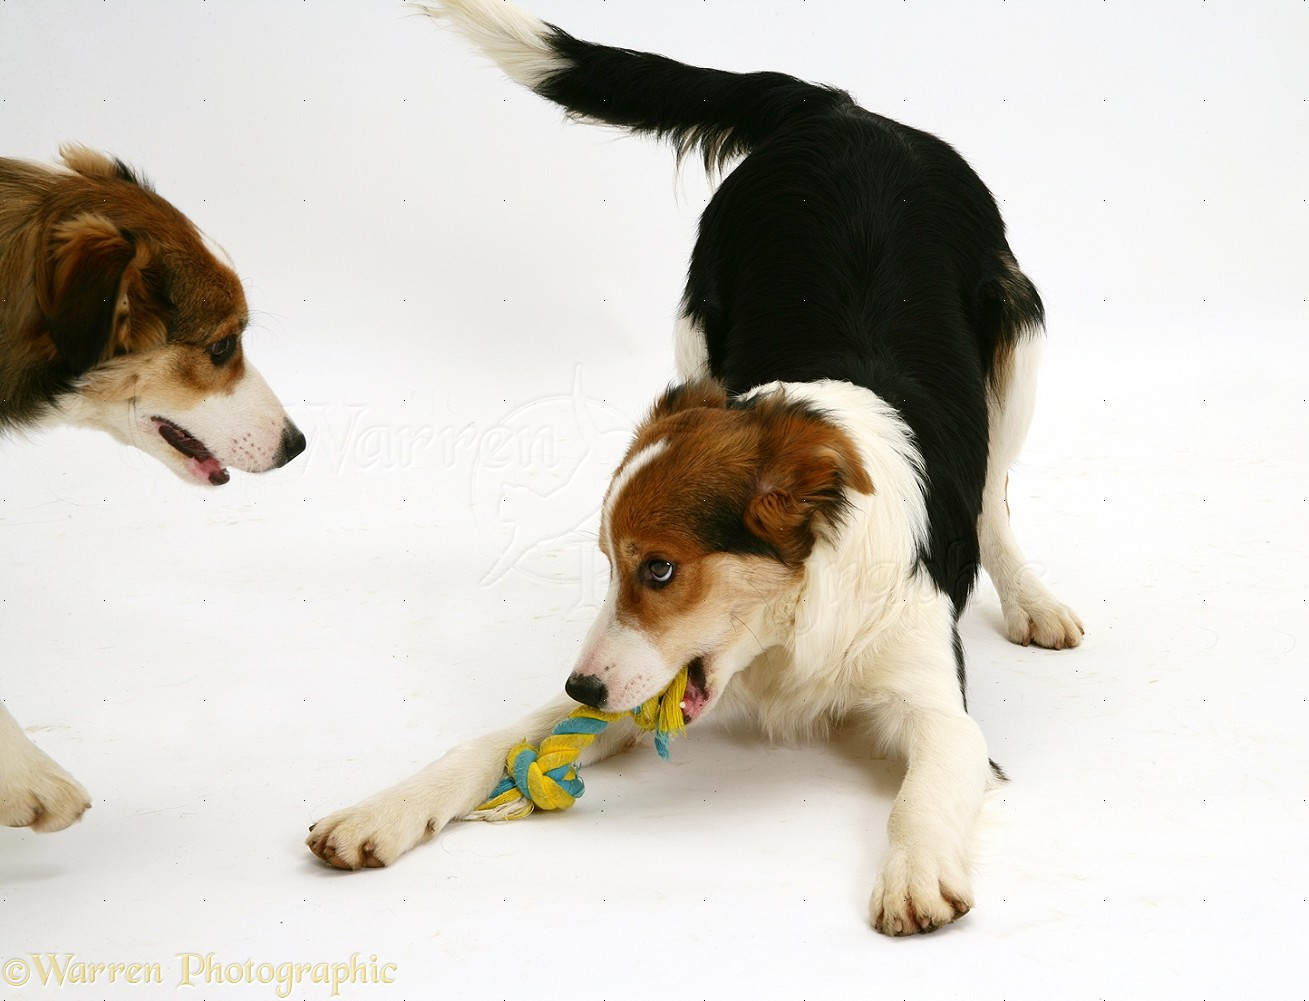 Wp14614 tricolour border collie pup minstrel play bowing with a toy